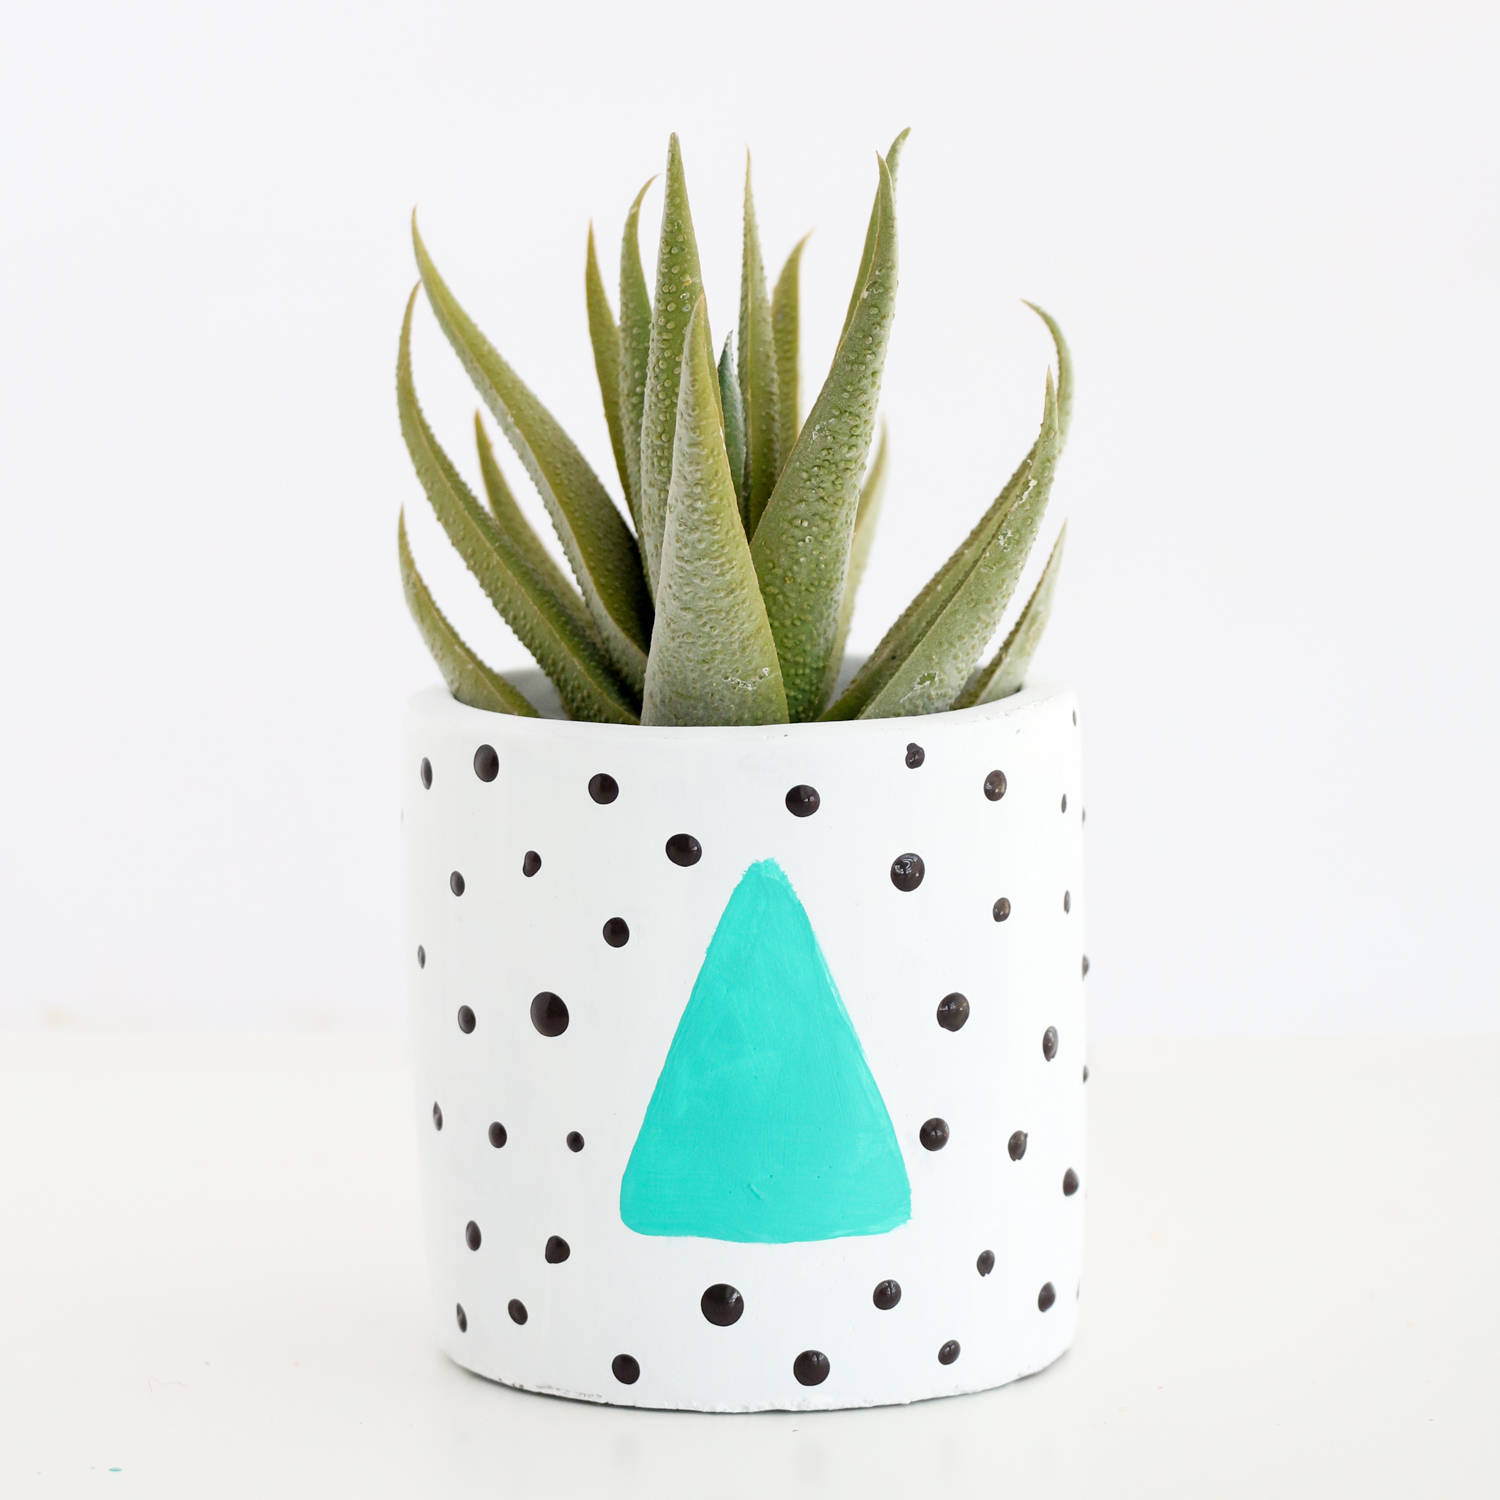 80s style plant pot display ideas from kailochic